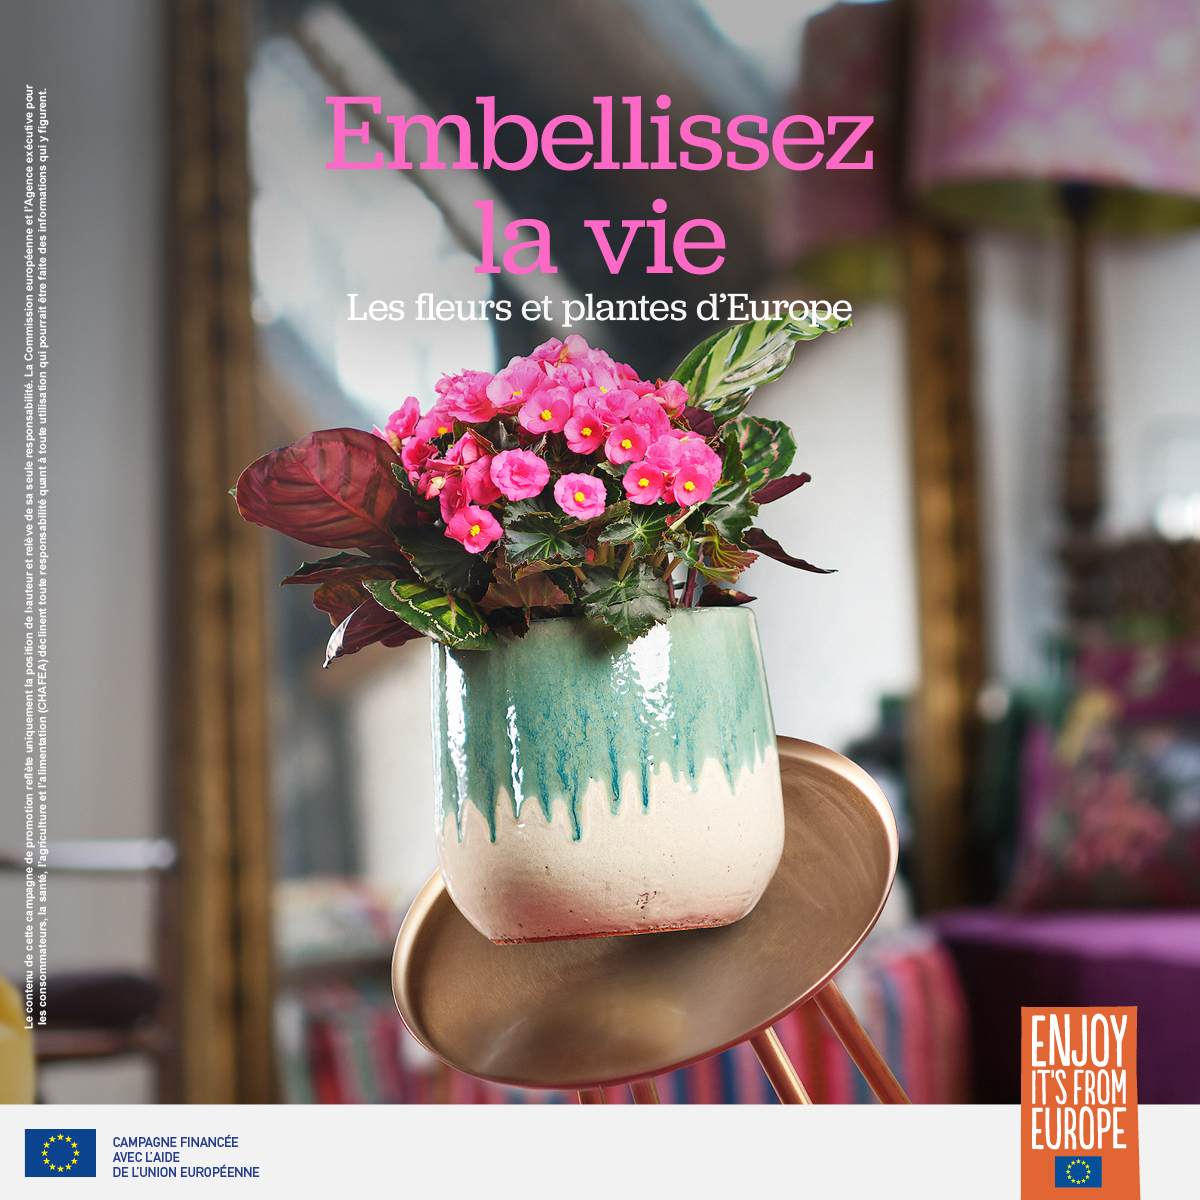 New promotional campaign for European flowers and plants-2